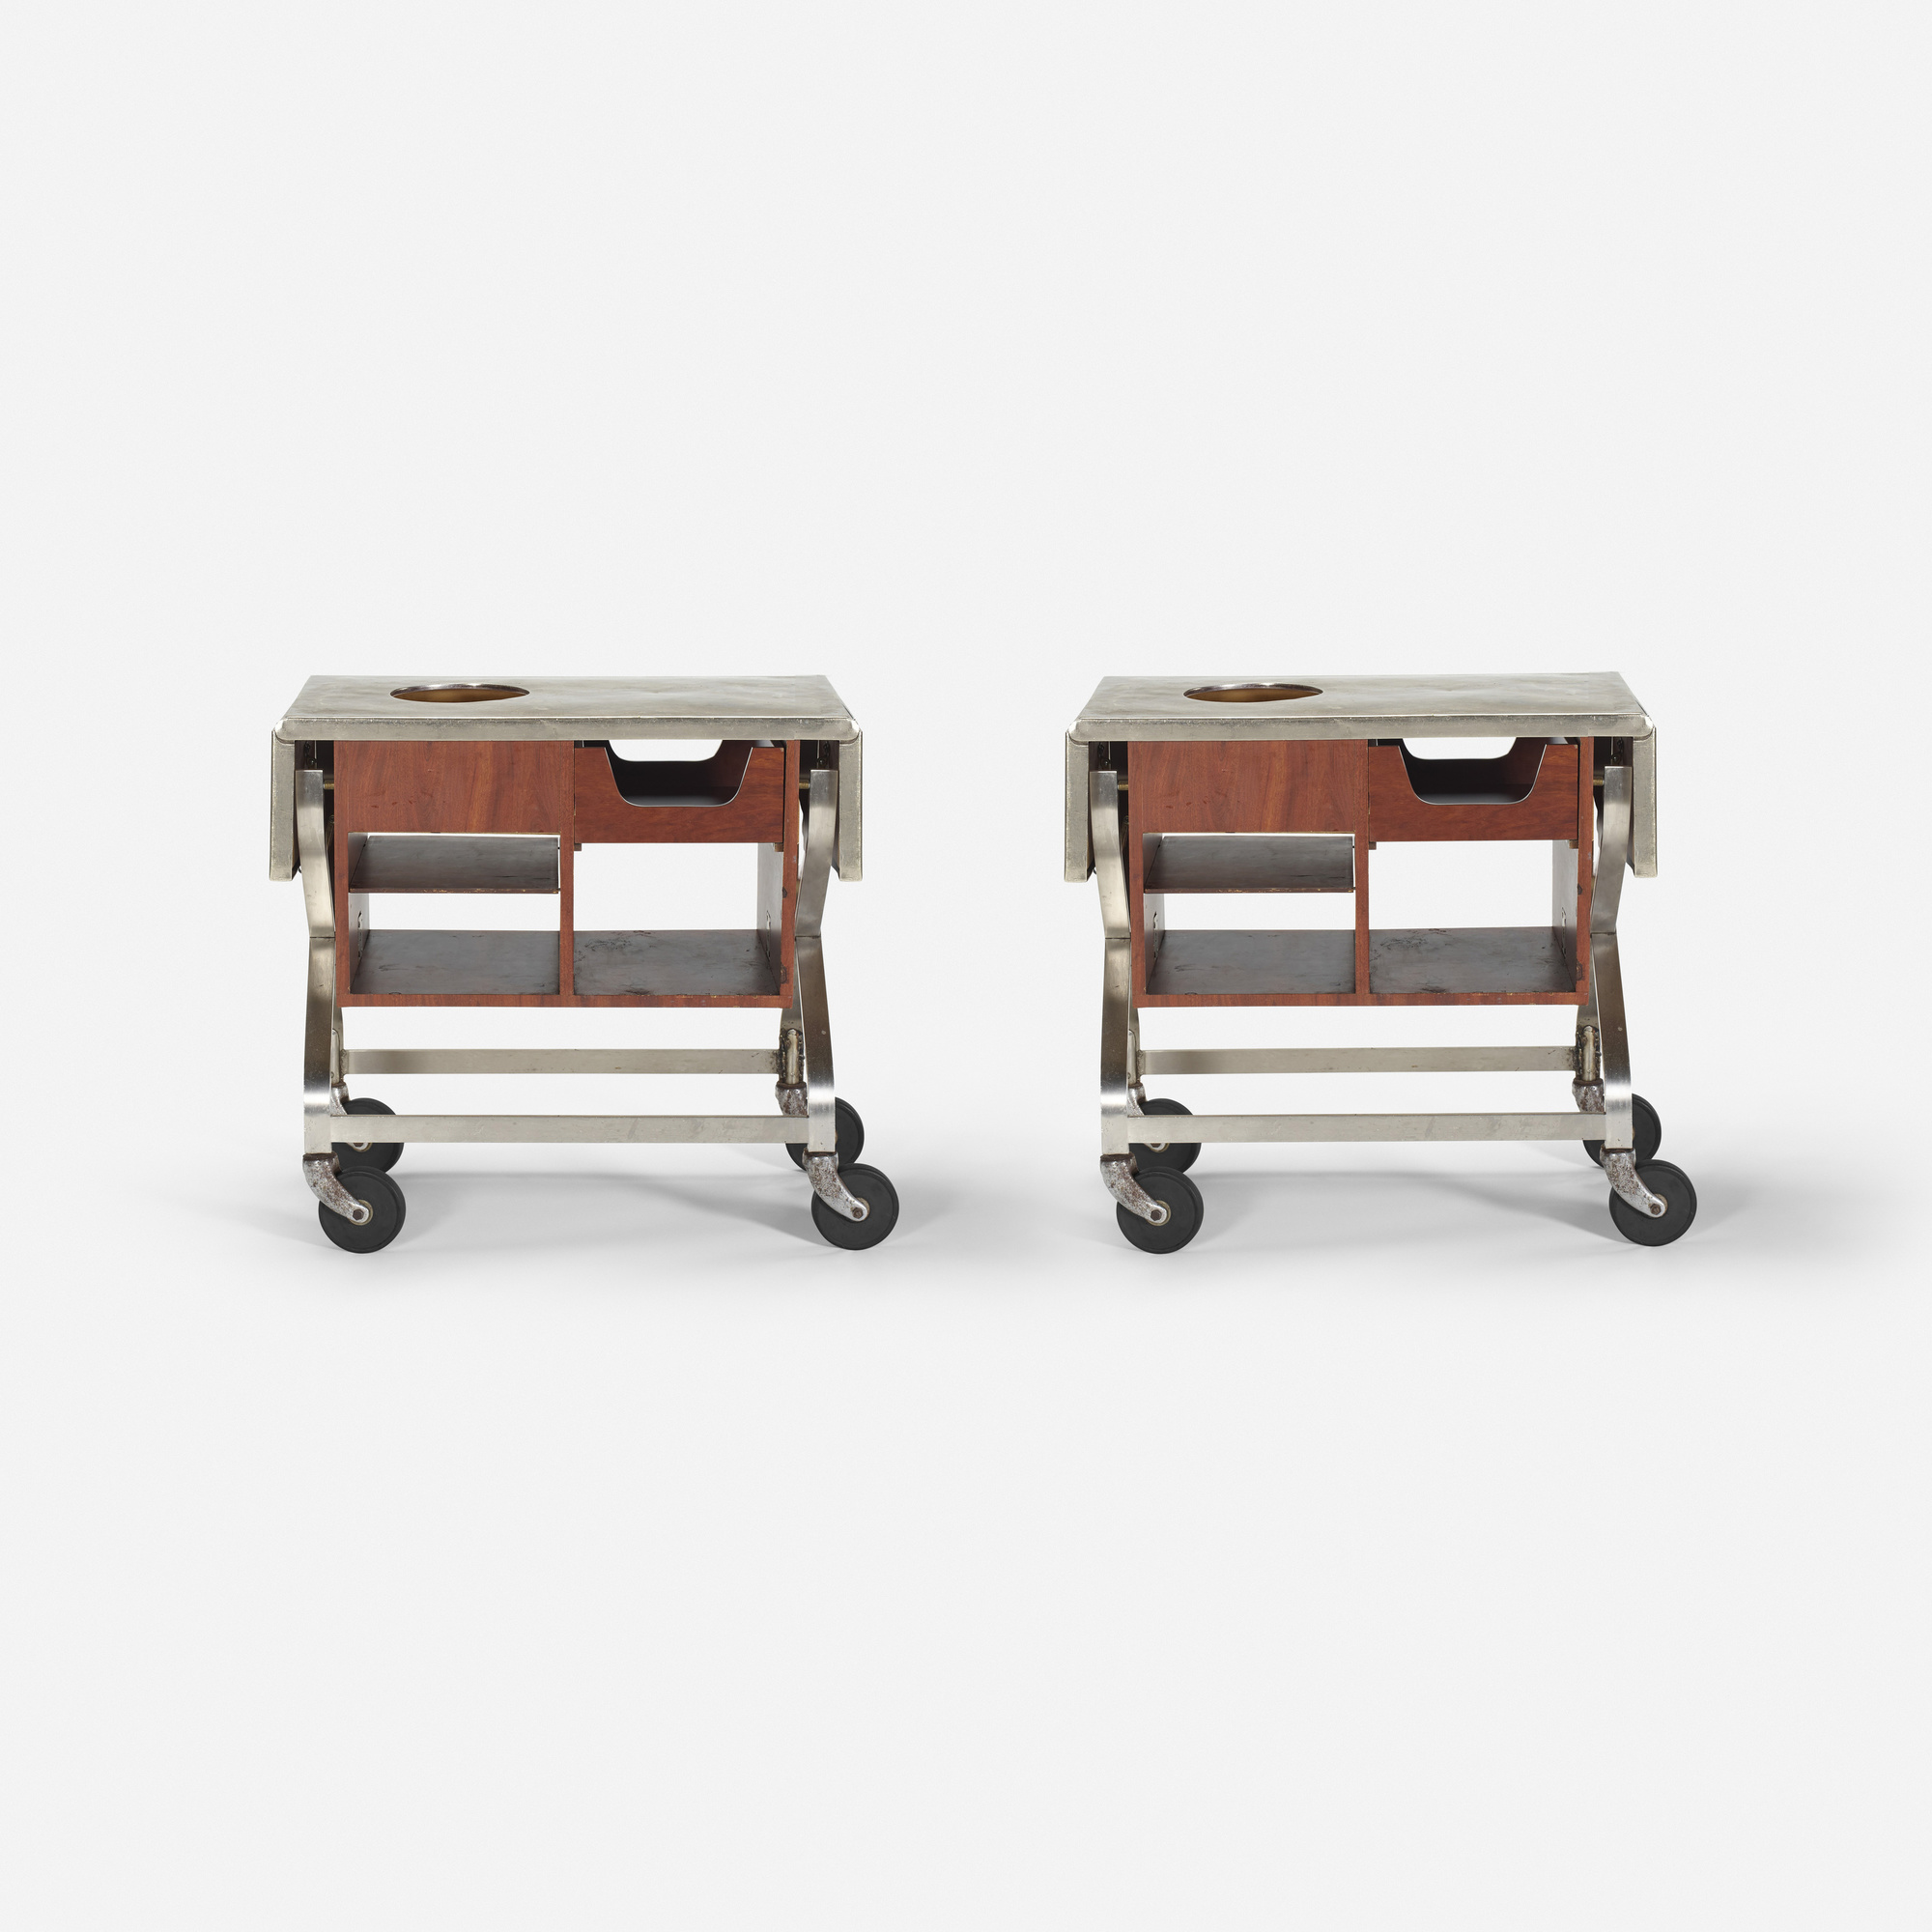 266: Garth and Ada Louise Huxtable / Serving carts from The Four Seasons, pair (1 of 1)